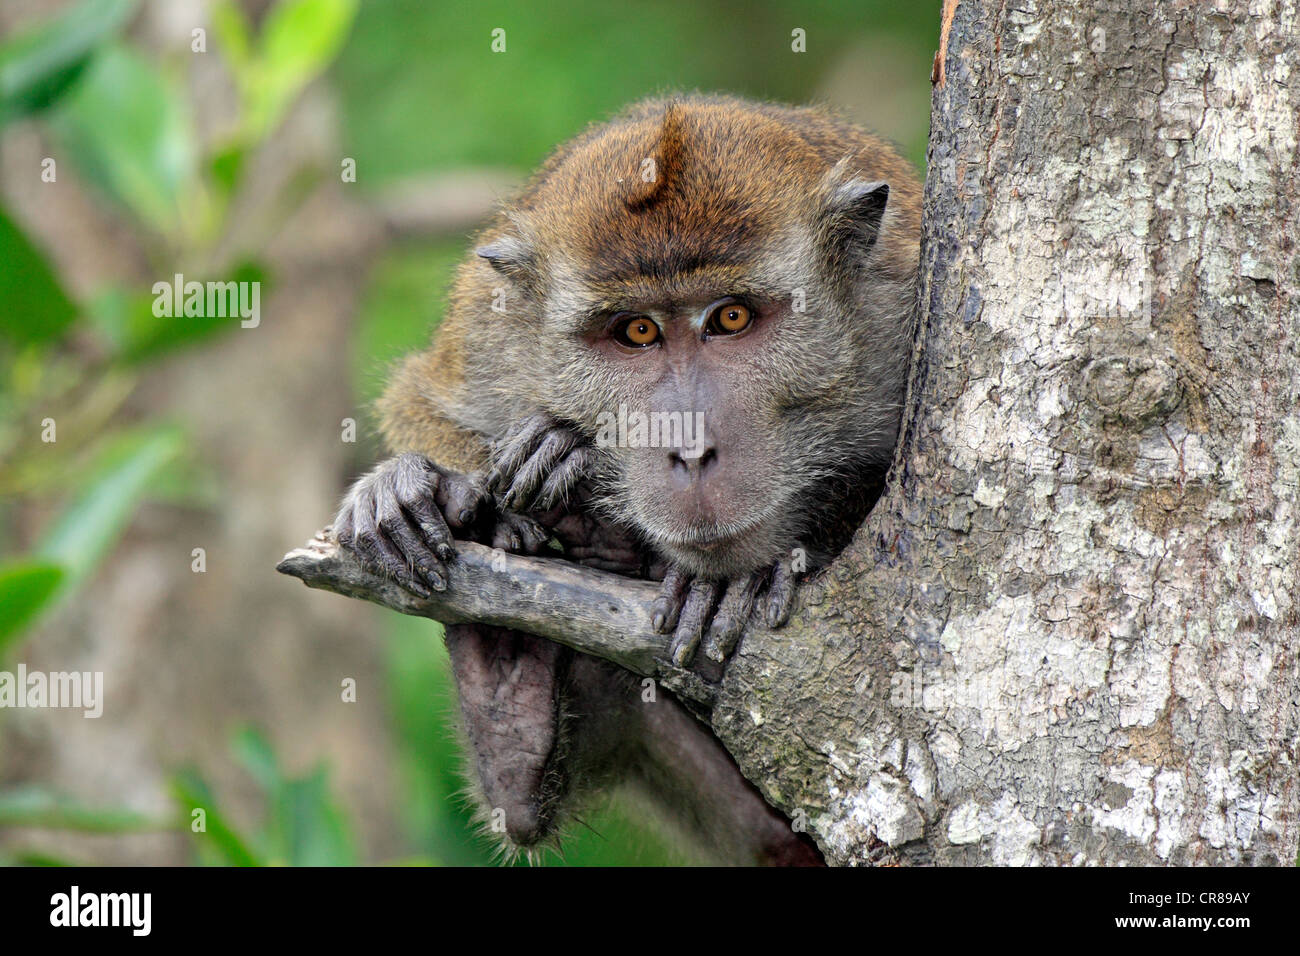 Crab-eating macaque (Macaca fascicularis), on tree, Labuk Bay, Sabah, Borneo, Malaysia, Asia Stock Photo